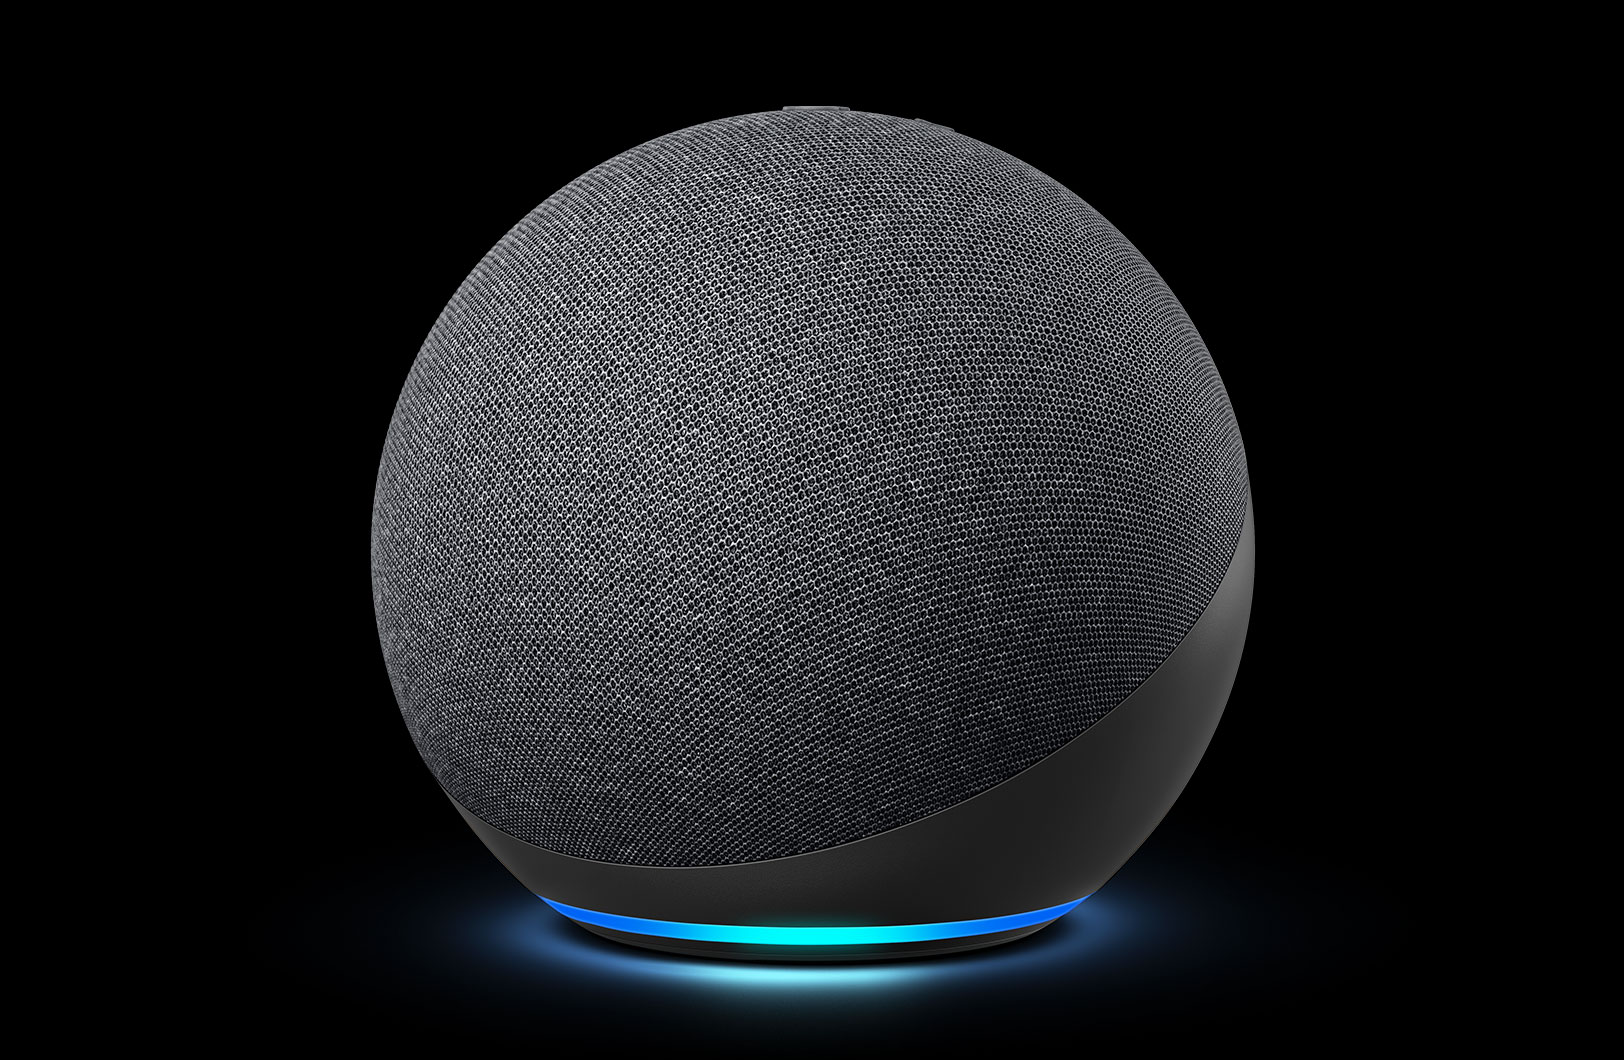 The new Amazon Echo is a powerful new orb